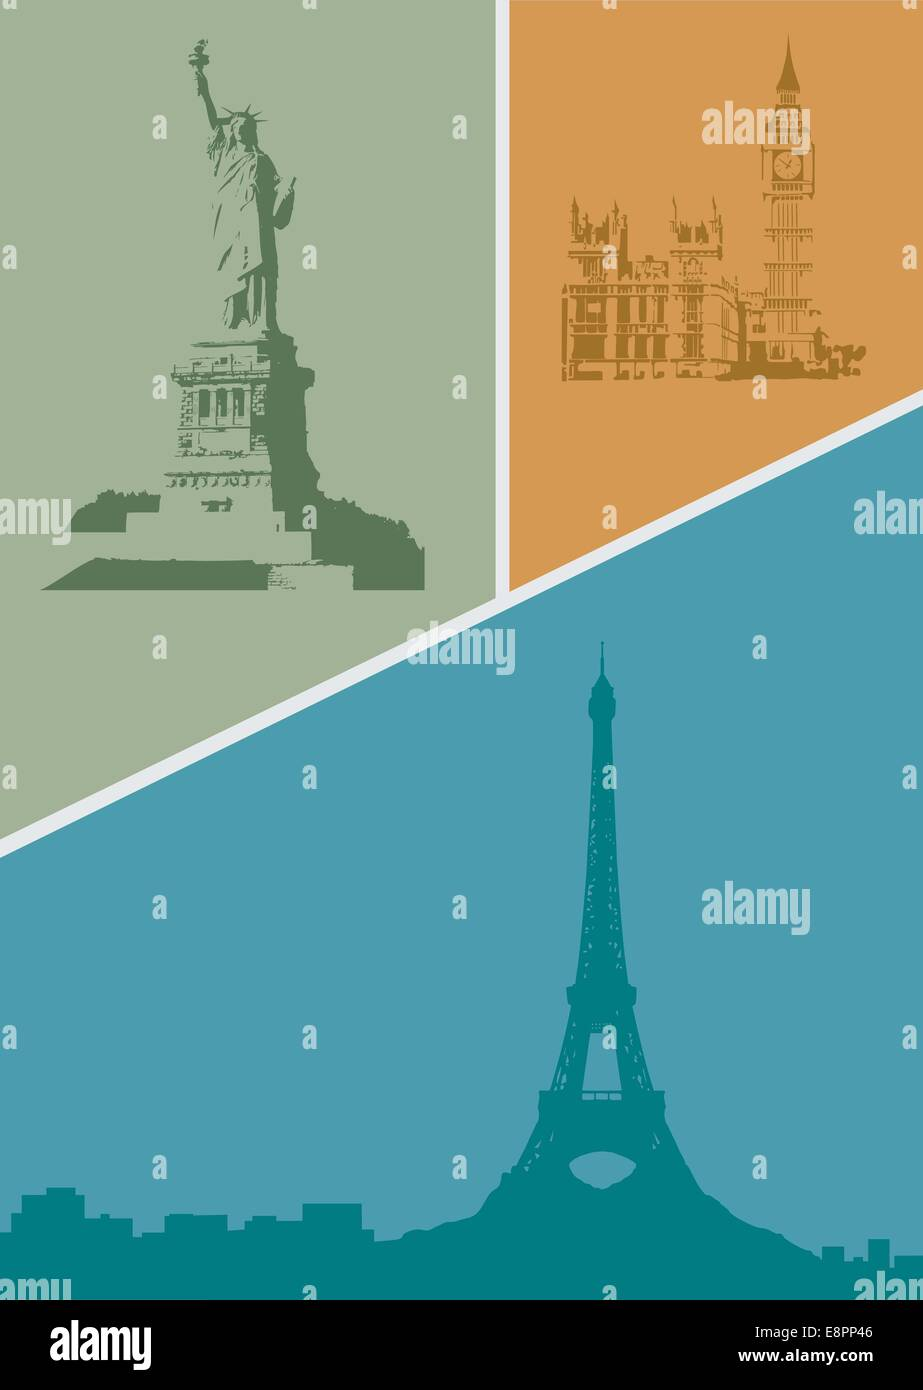 Illustration with contours of various cities of the world. - Stock Image